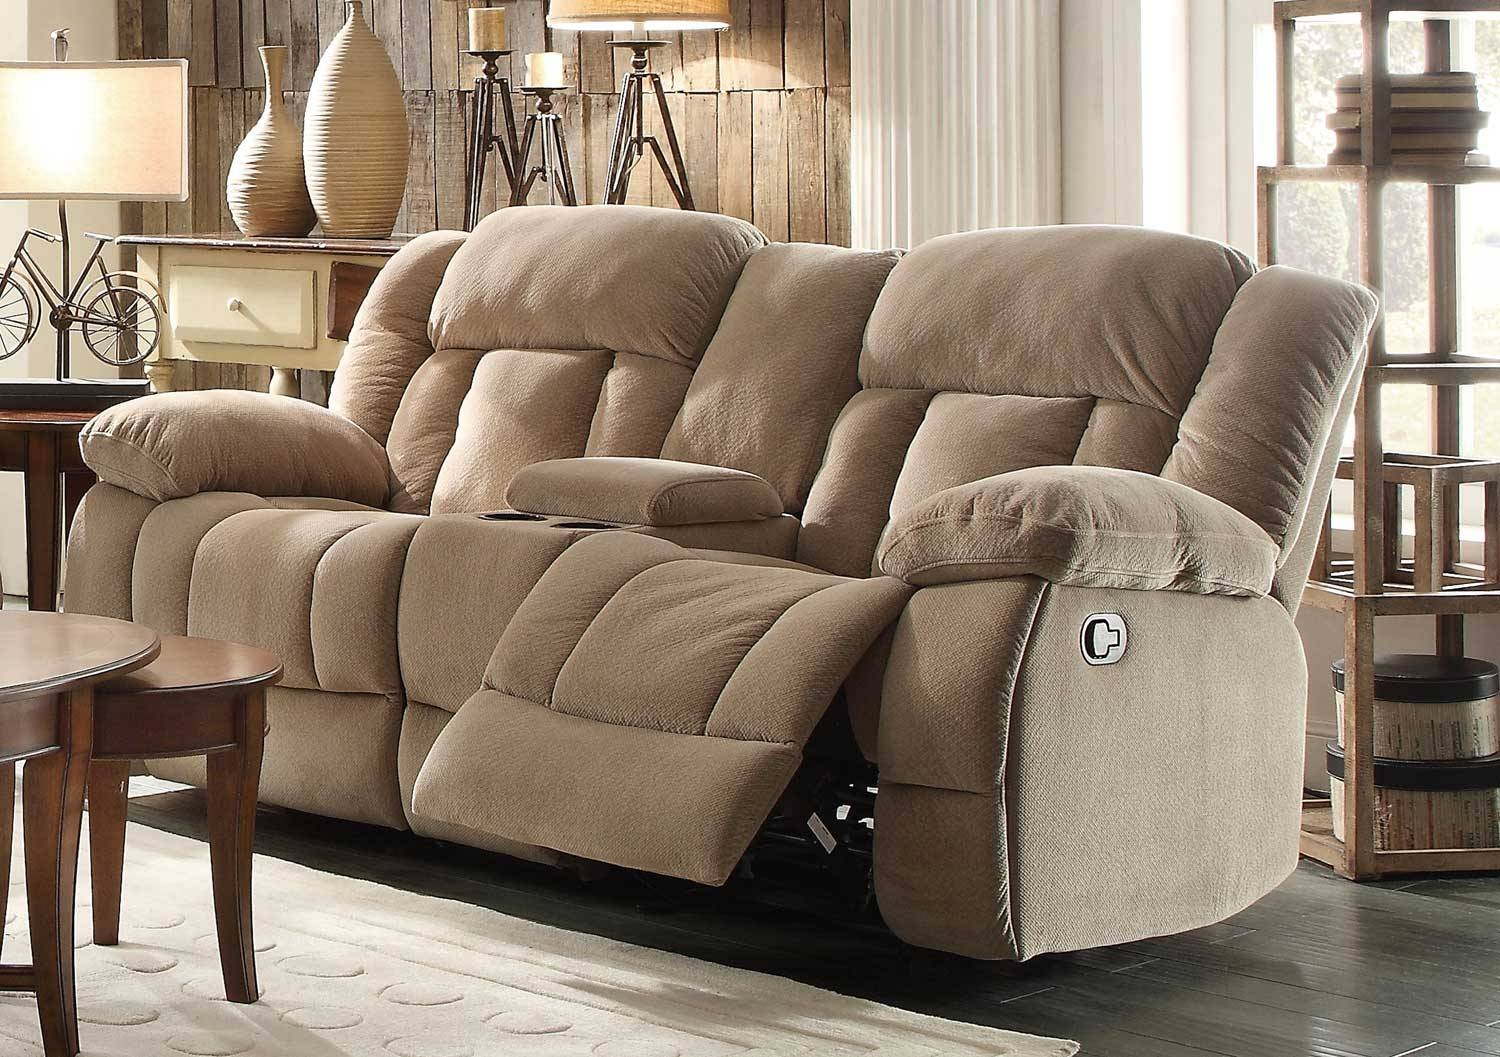 Sofas Center : Reclining Sofa With Console Tony Home Theatre For Sofas With Consoles (View 22 of 30)